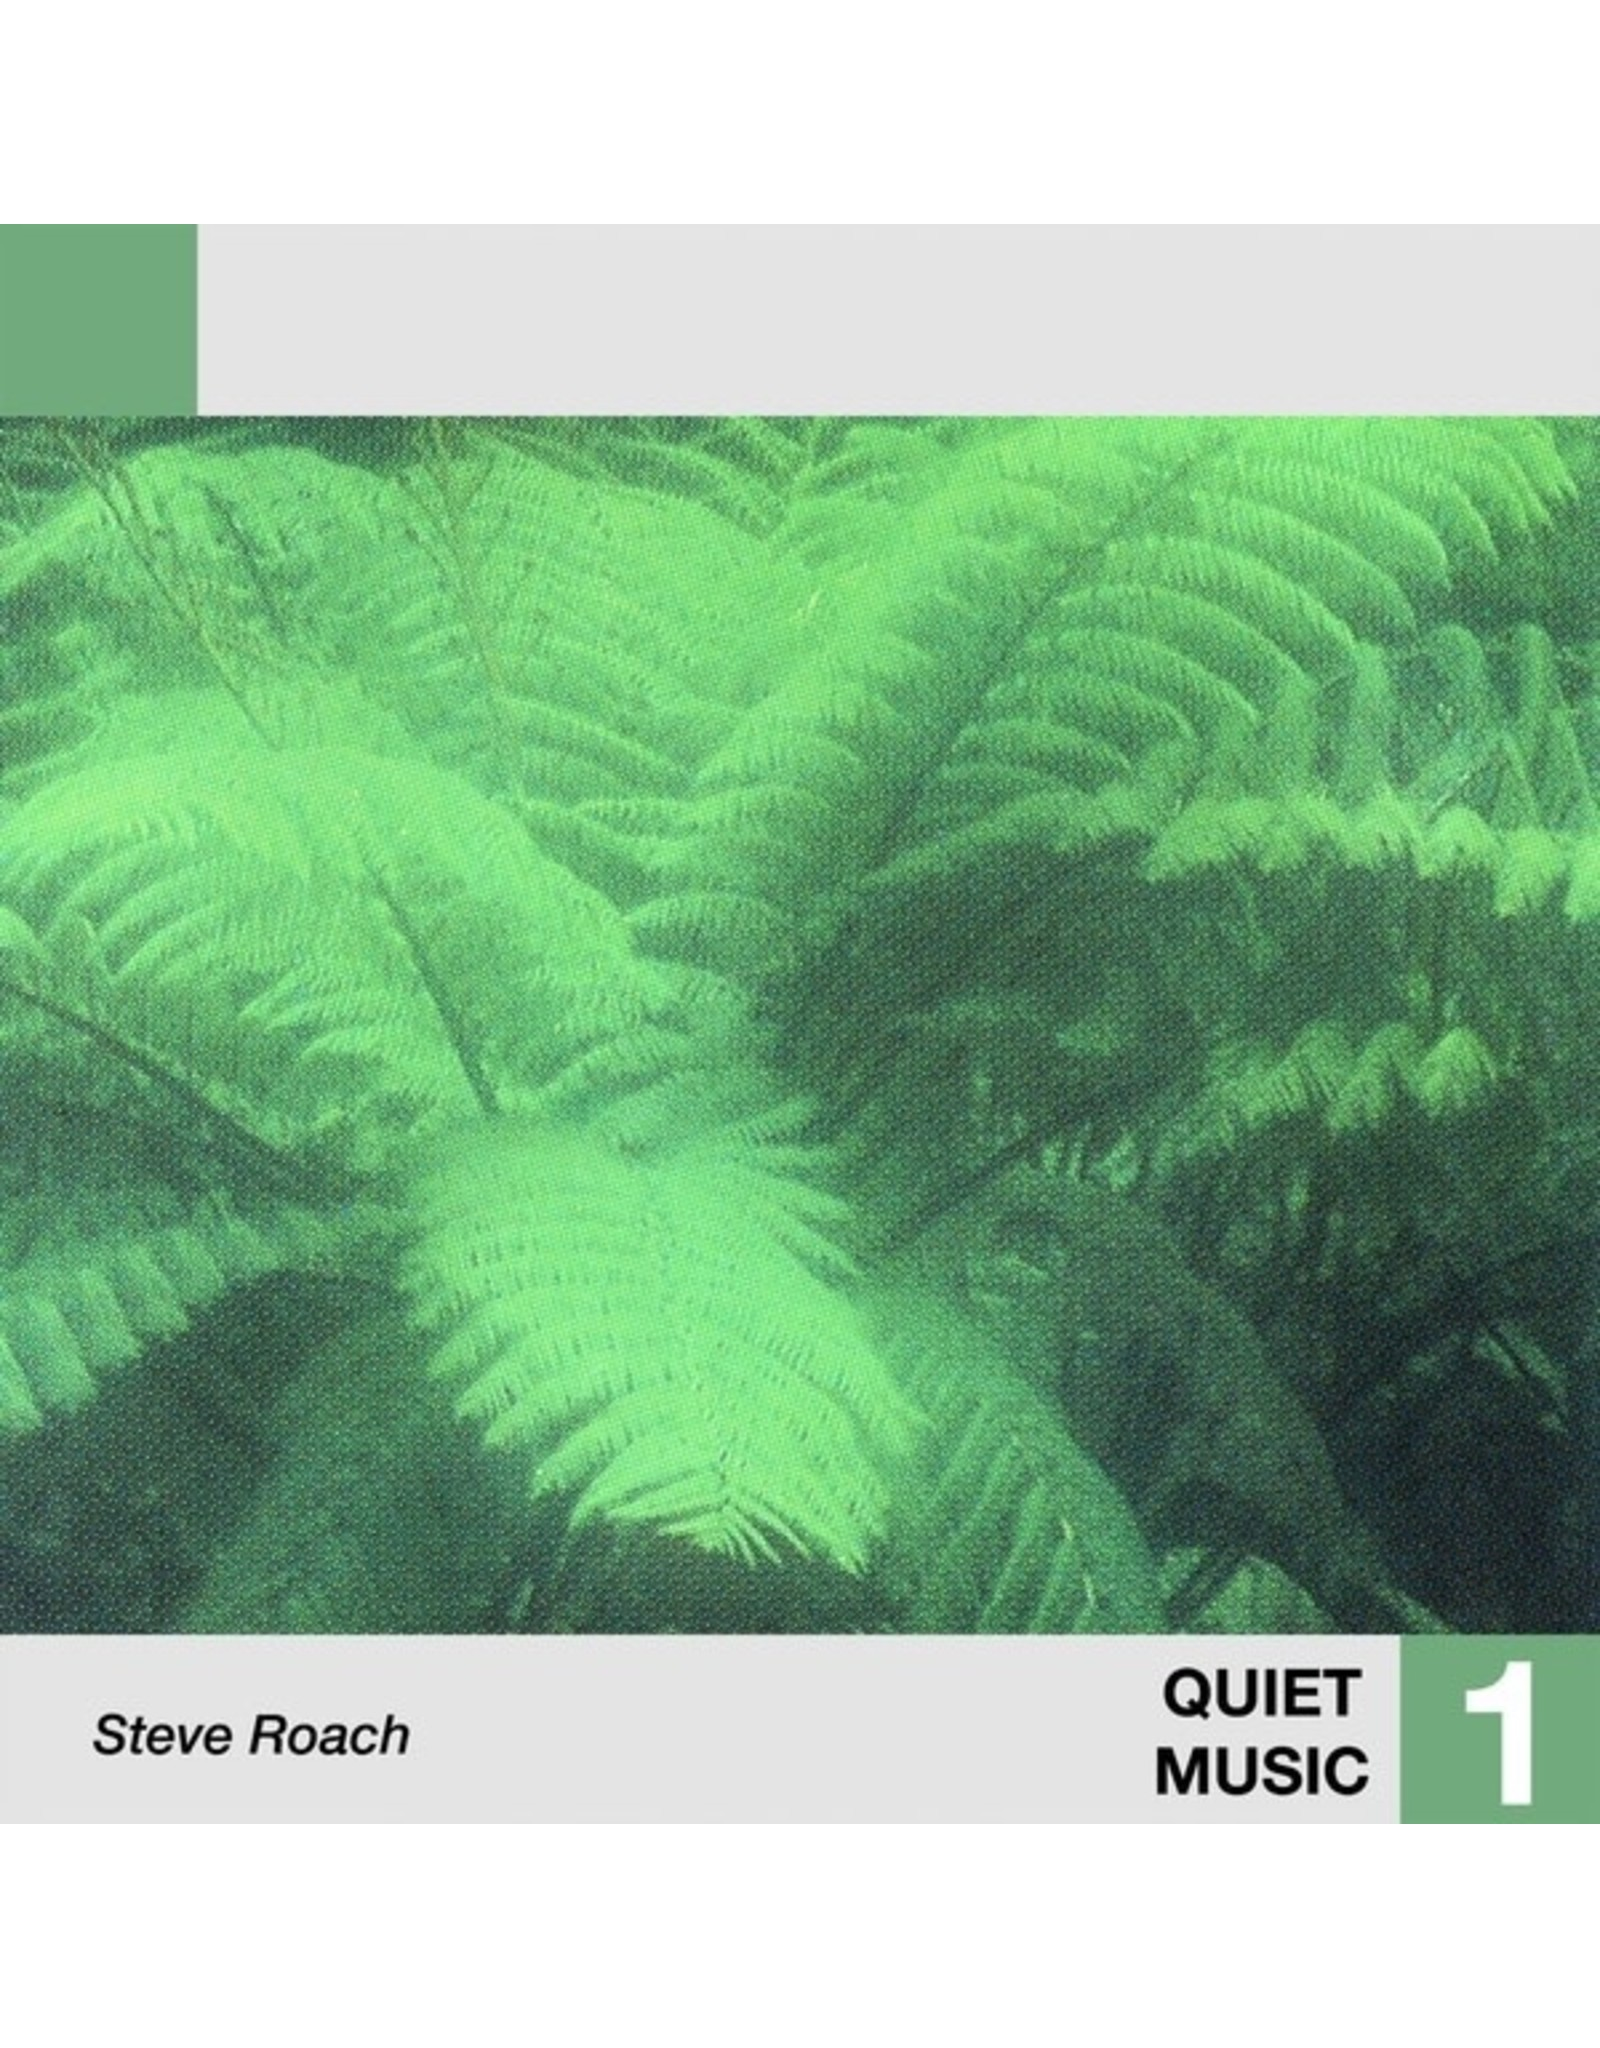 Telephone Explosion Roach, Steve: Quiet Music 1 LP